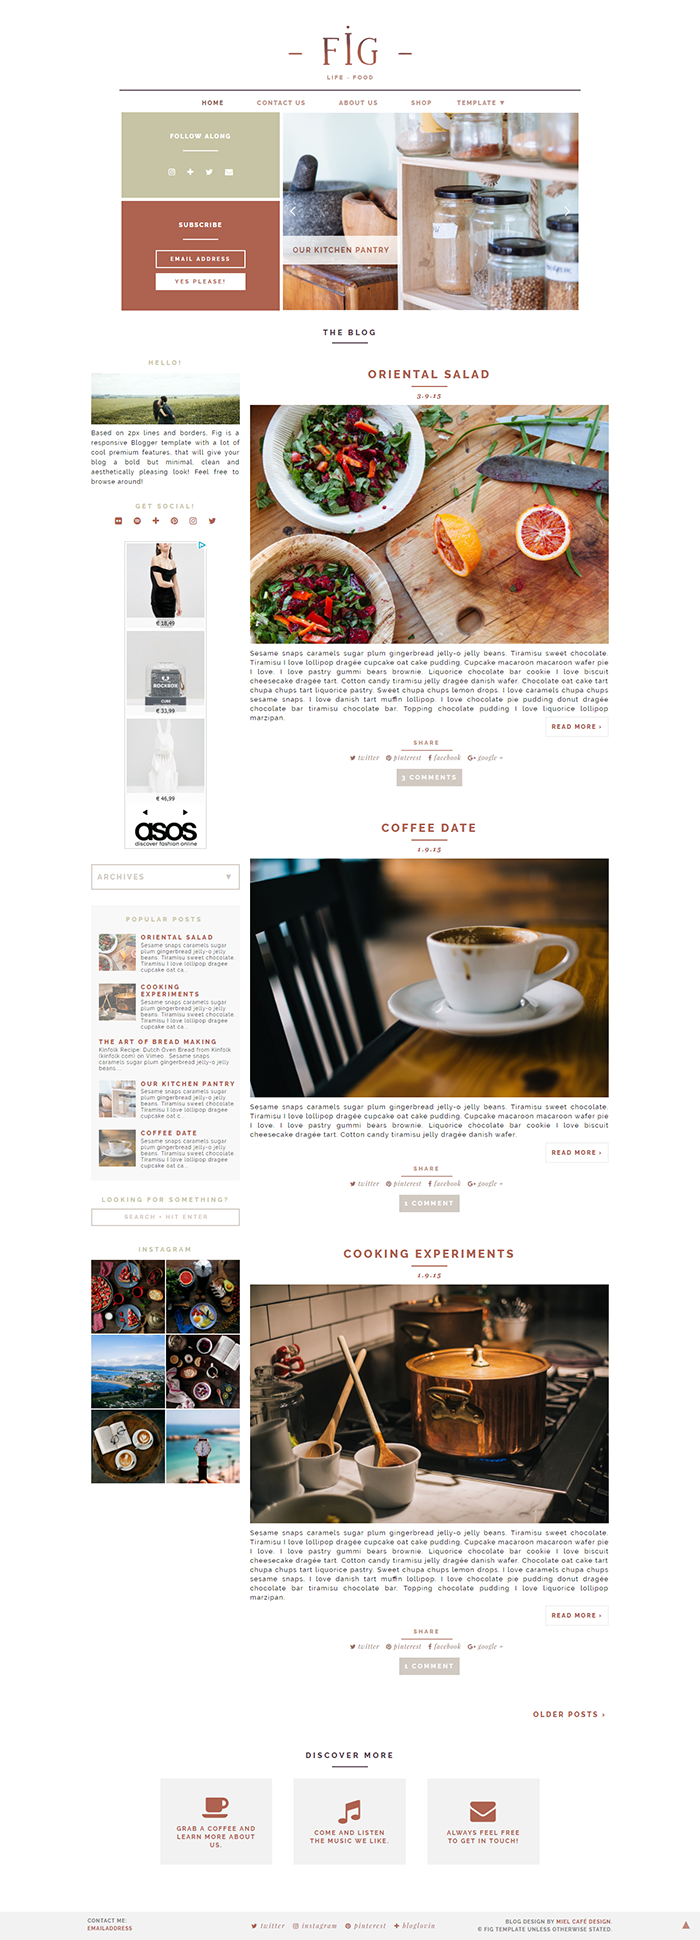 Fig Semi-Custom Blogger Template - Miel Café Design